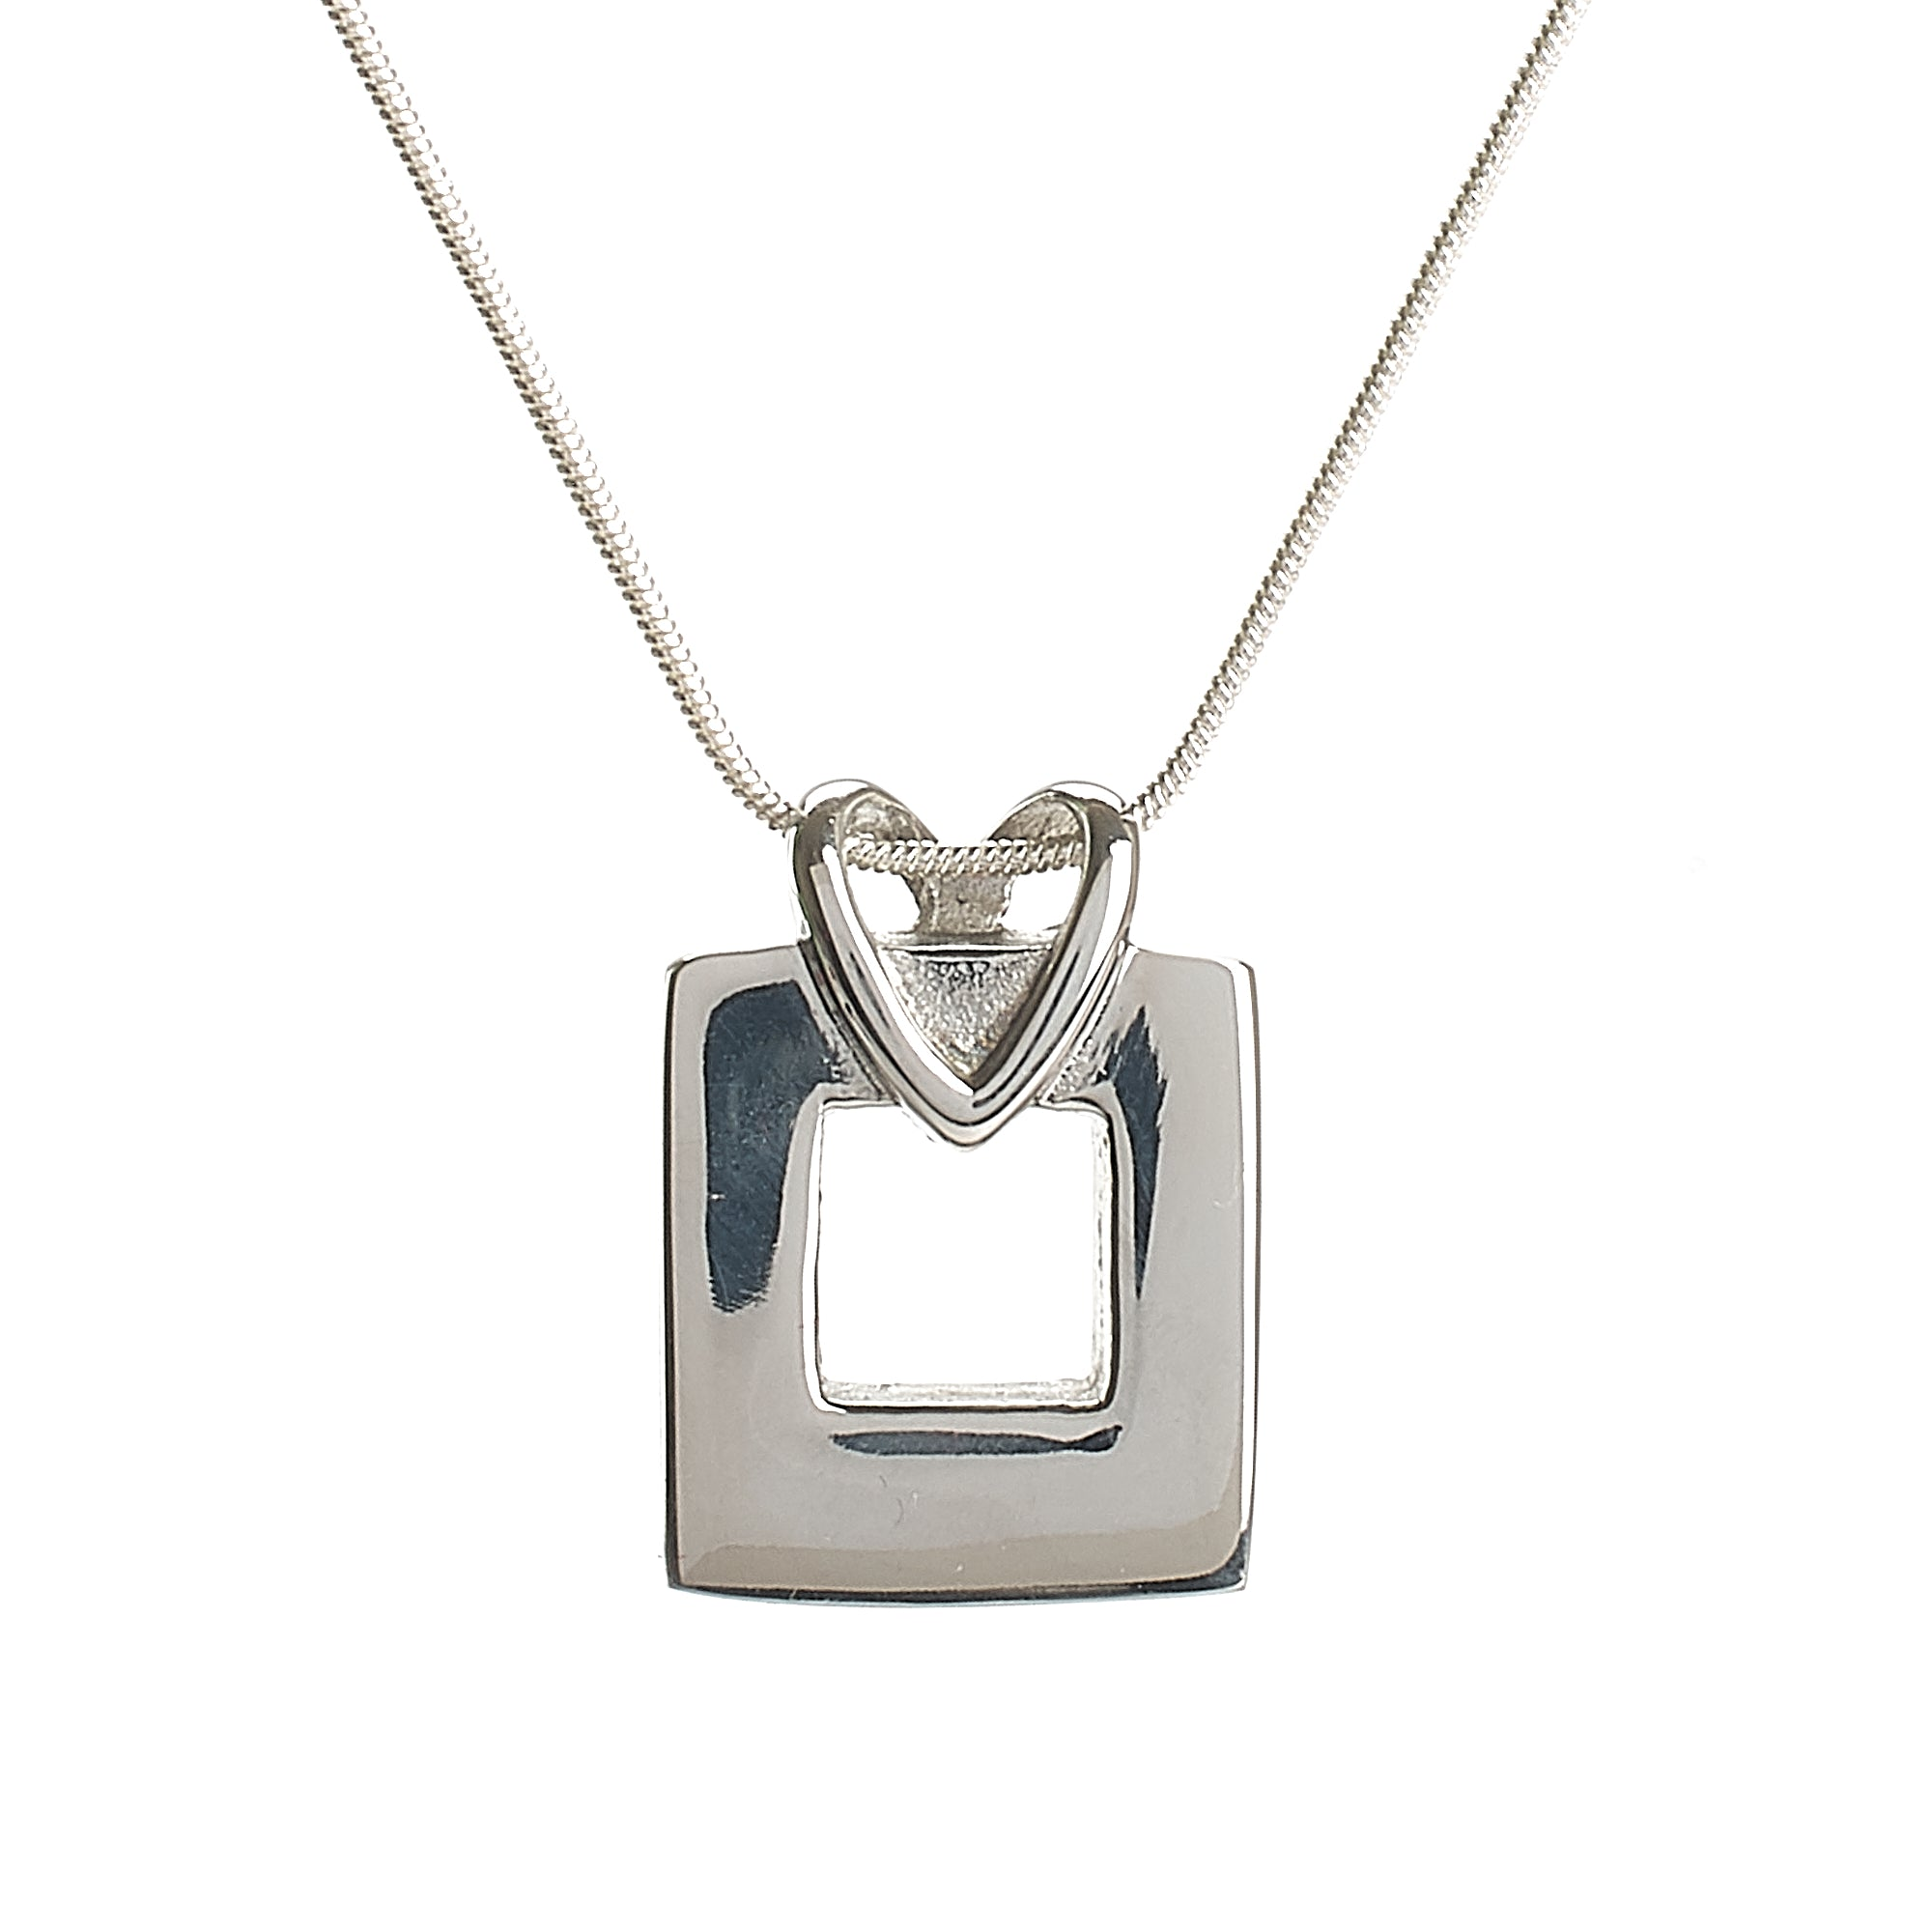 Cremation Pendant - Square with Heart